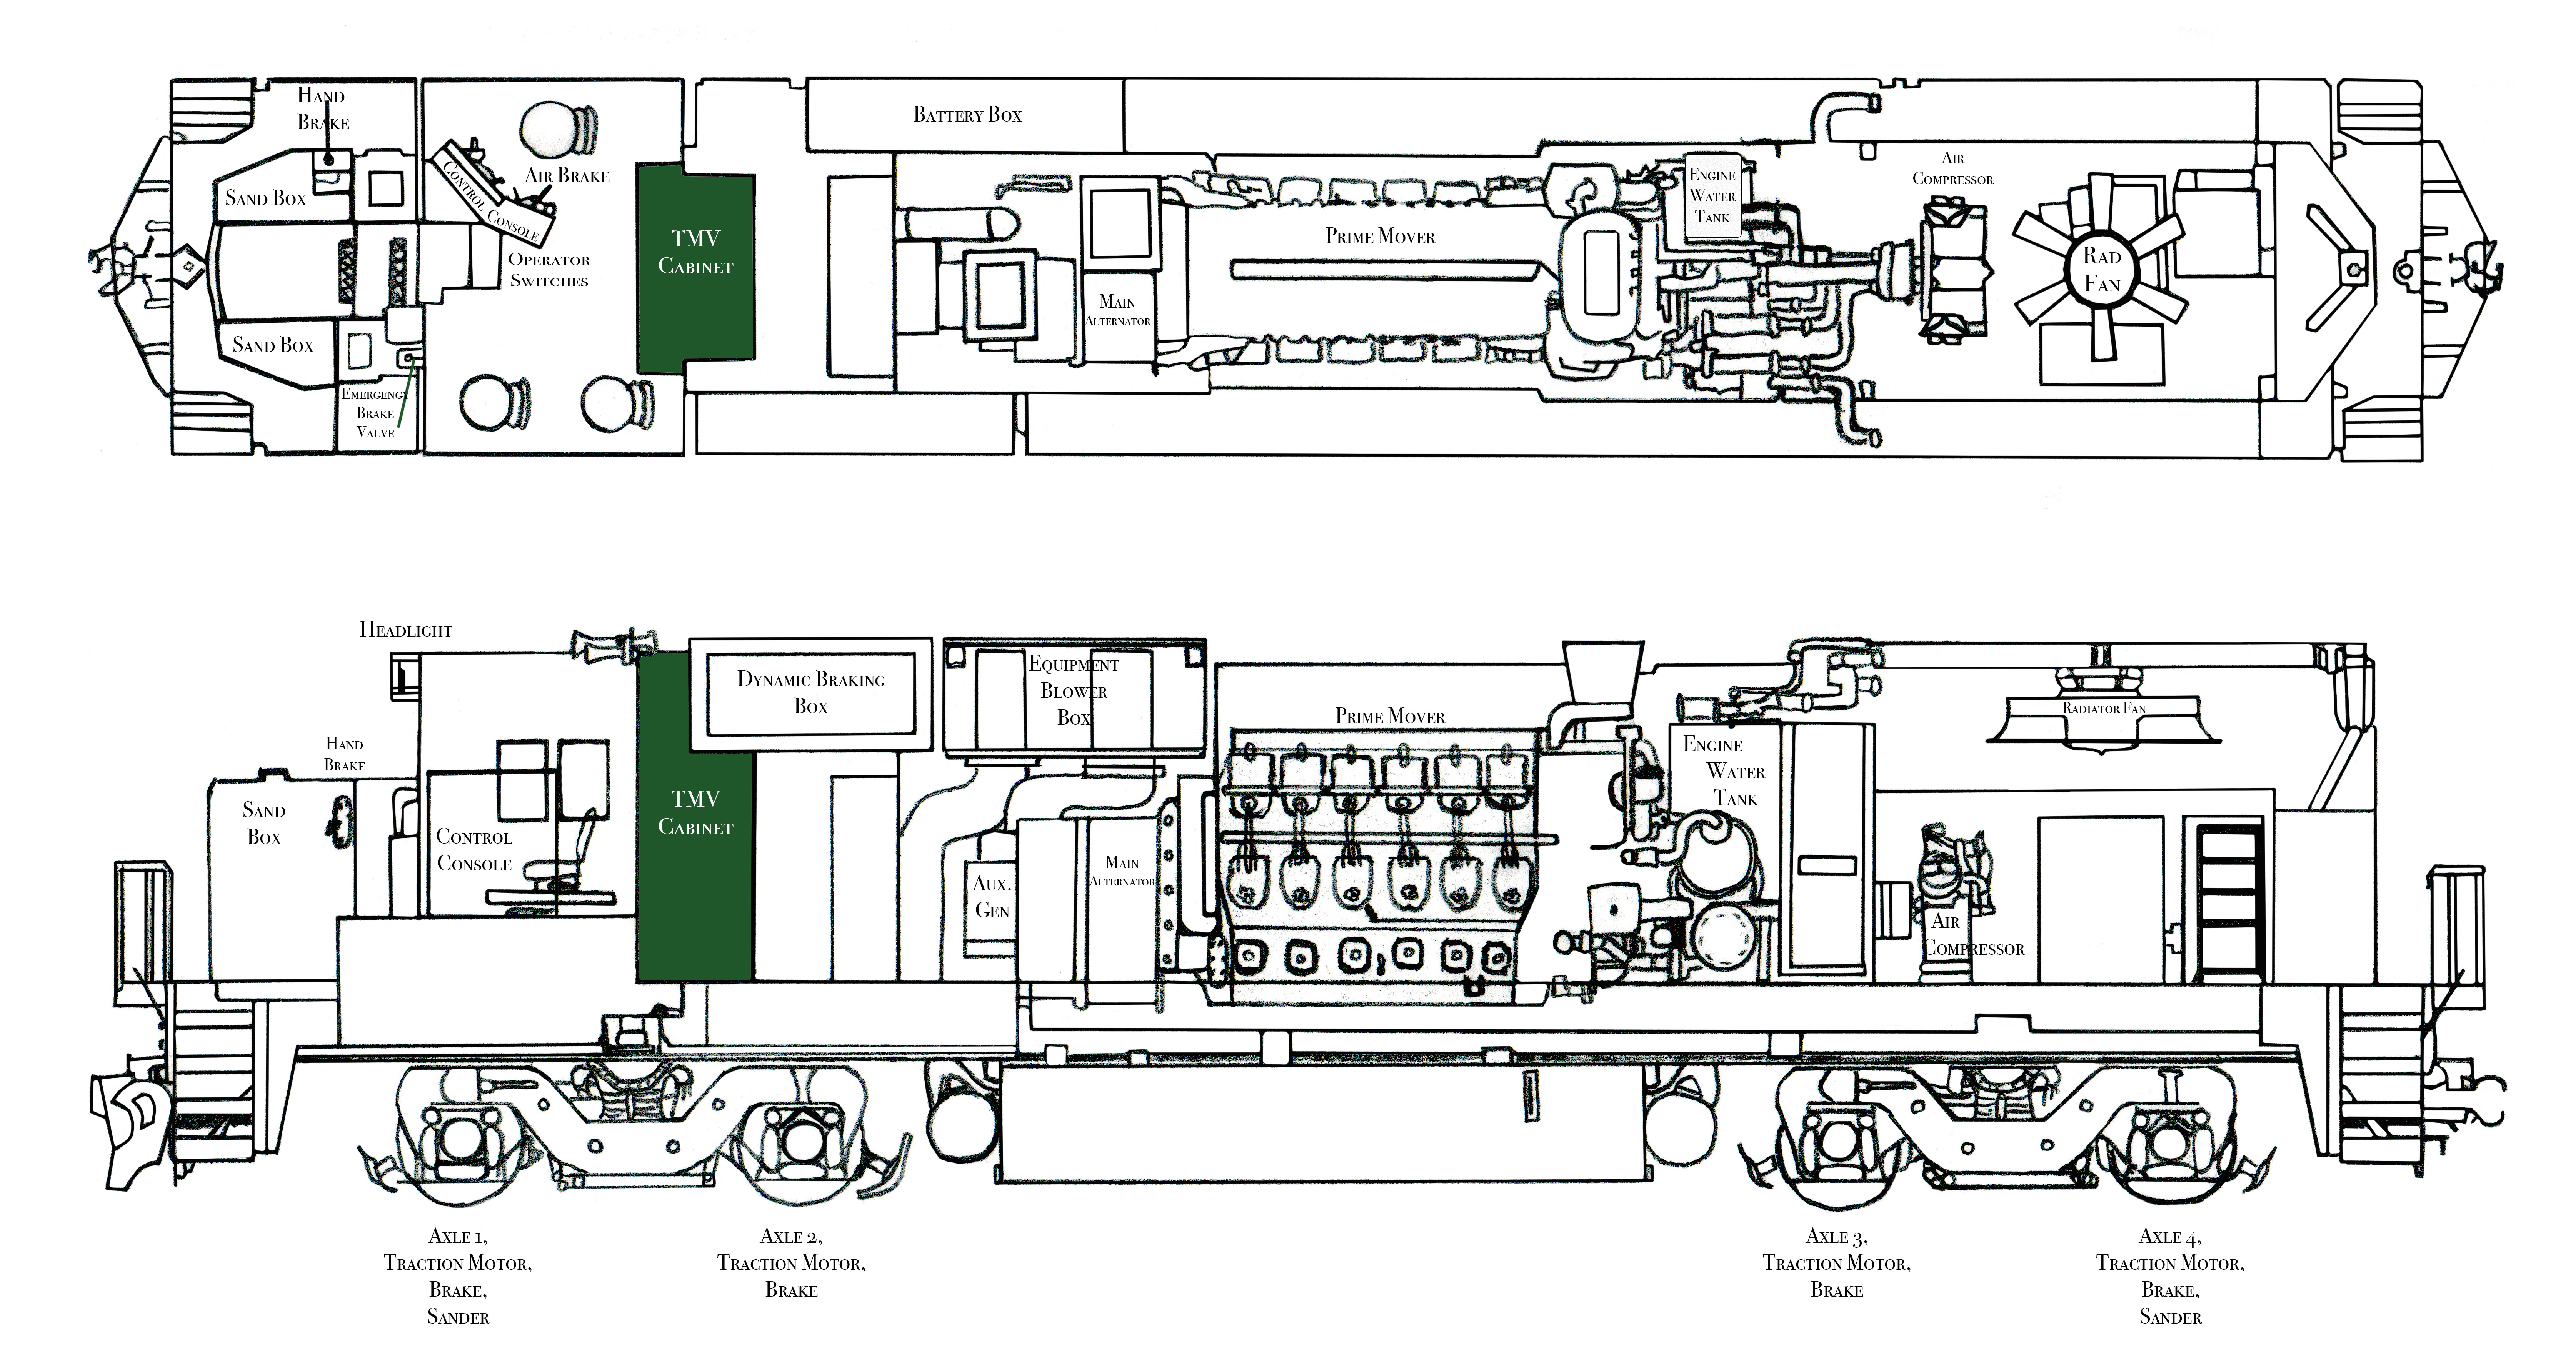 Graphic Design Locomotive location image of TMV cabinet in typical 4-axle train